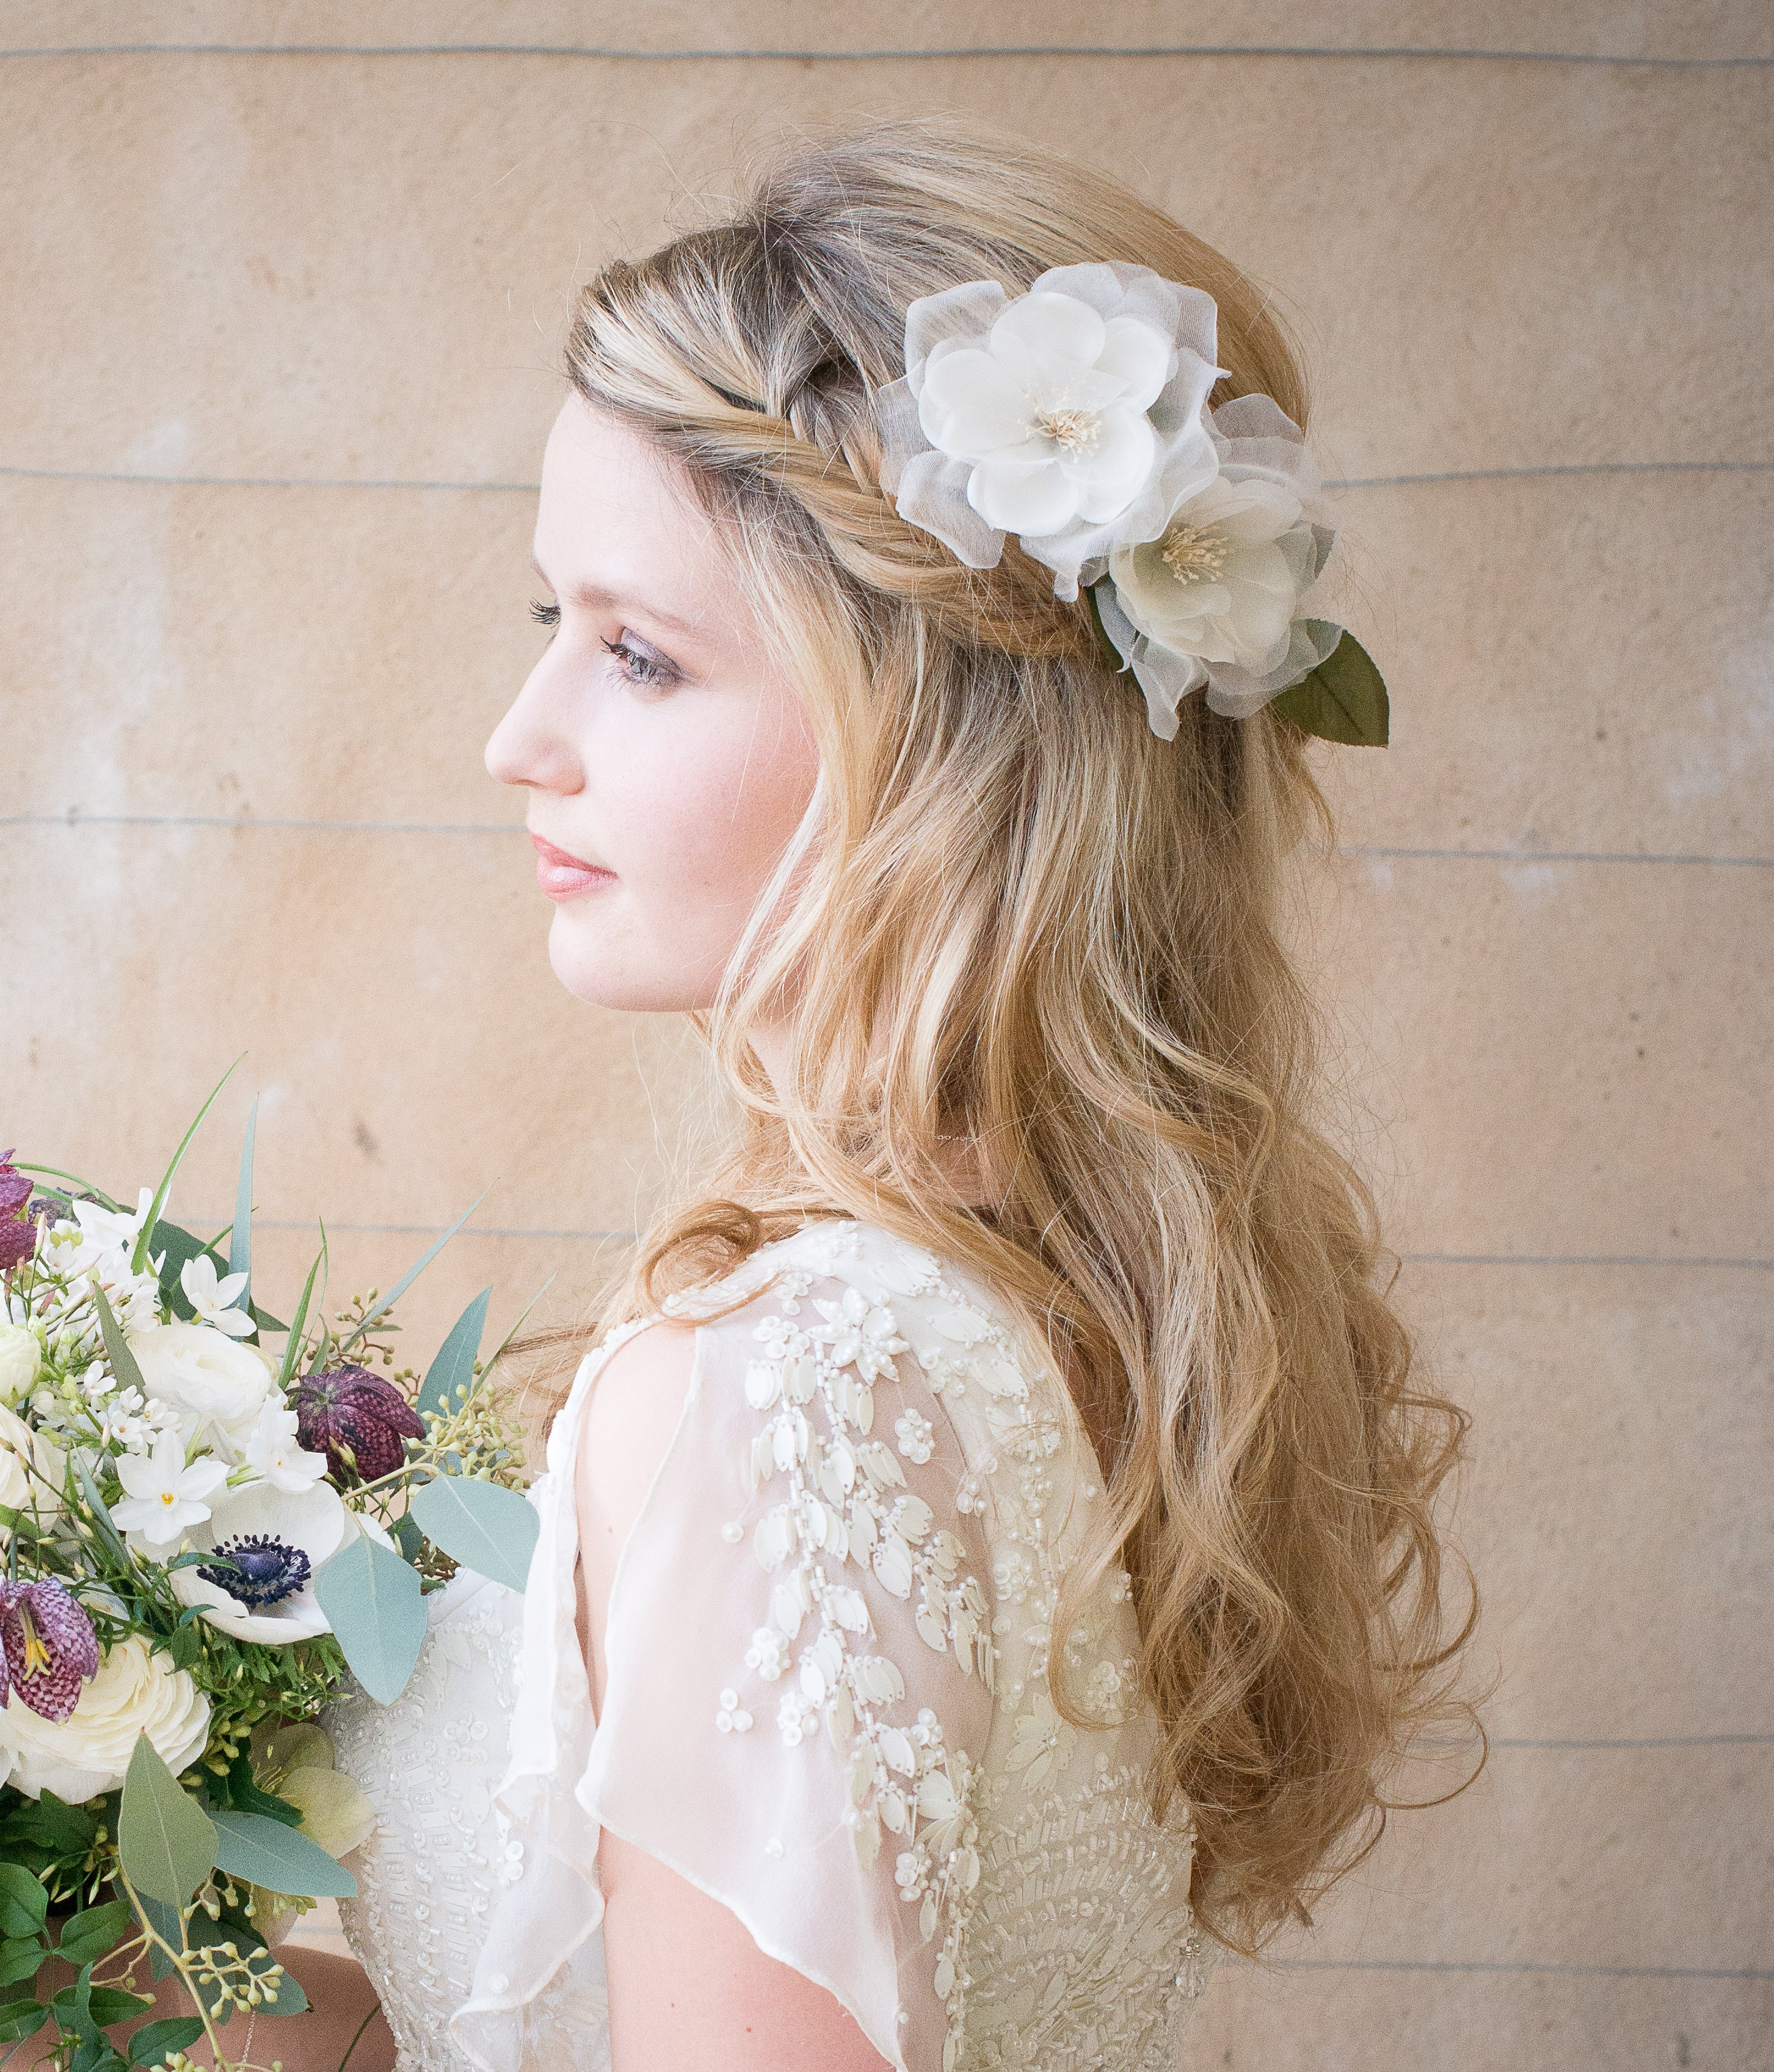 Floral Wedding Hair Comb By Britten: Bridal Flower Hair Combs Uk